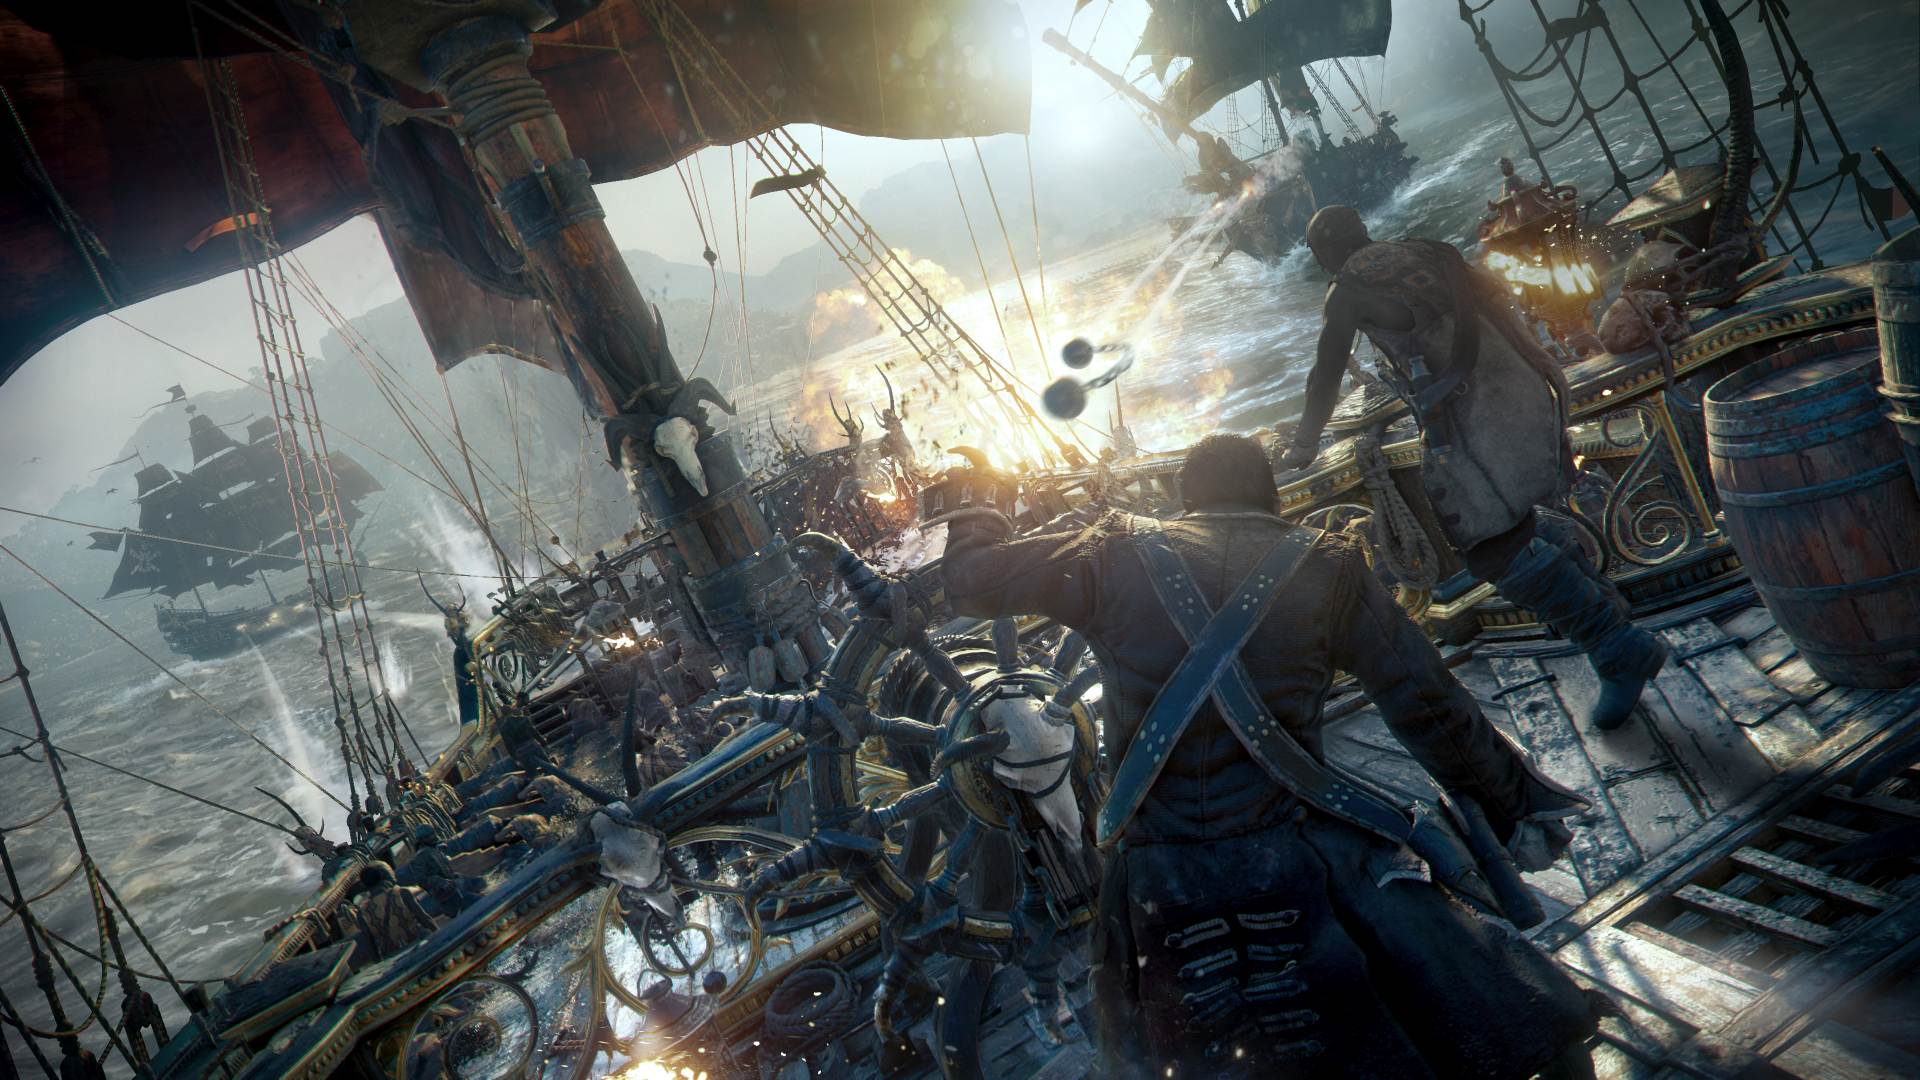 Ubisoft's Skull & Bones has been pushed out again to 2022 to 2023